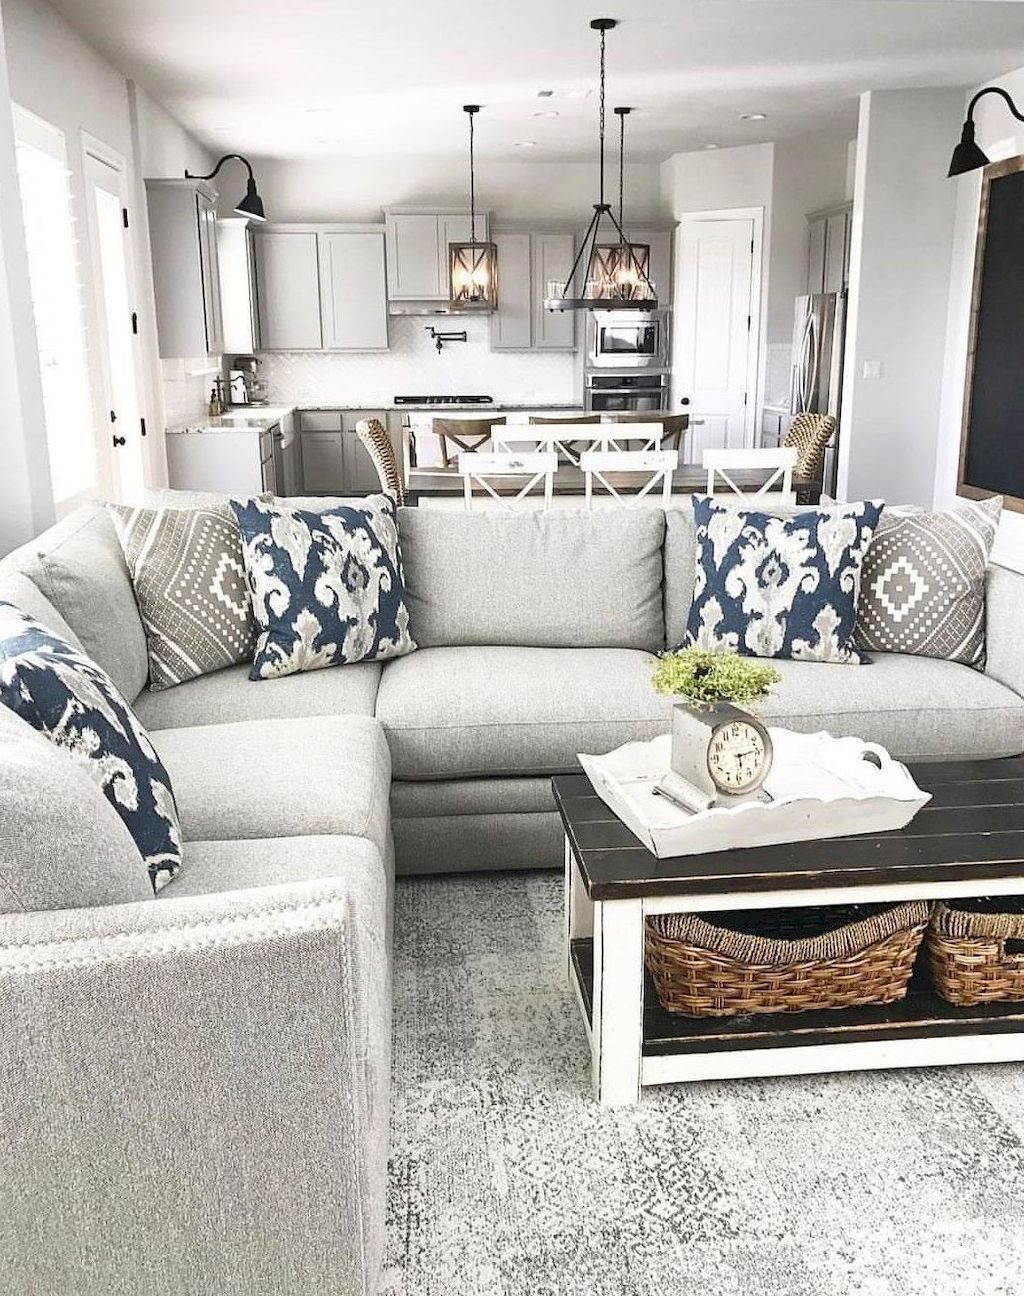 110 BEAUTIFUL MODERN FARMHOUSE LIVING ROOM DECOR IDEAS ...